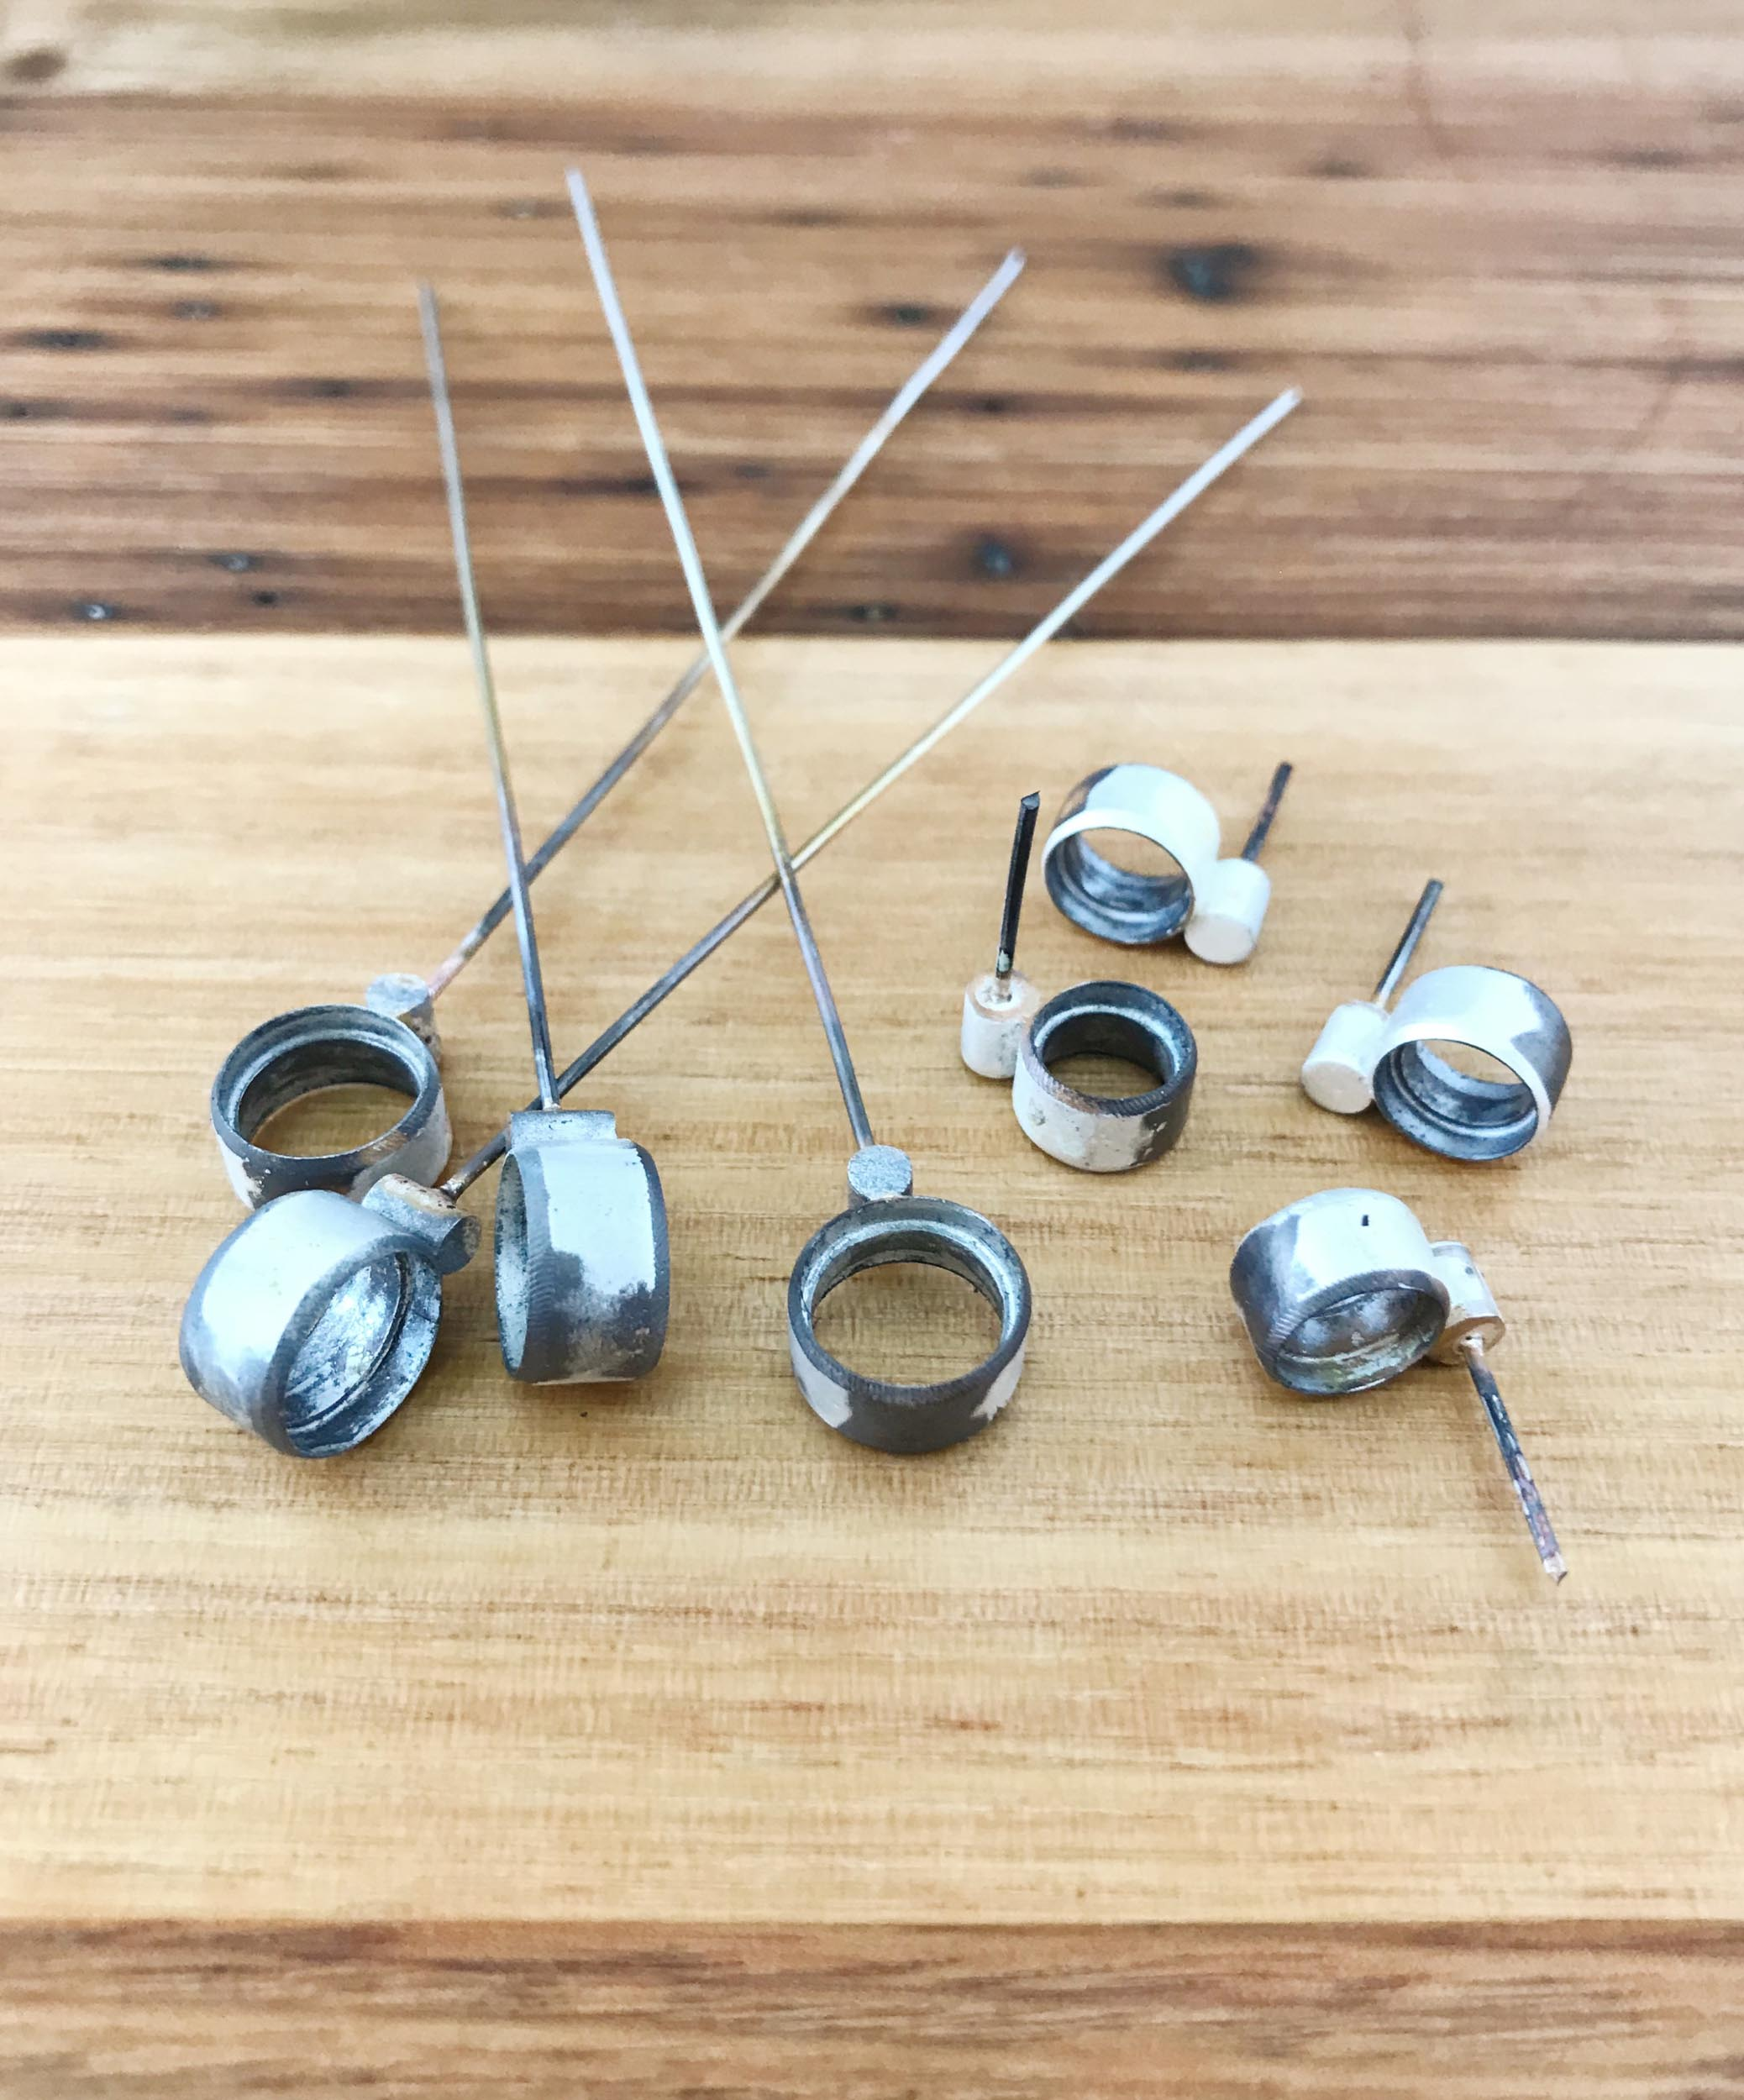 Microscope Earrings just after soldering. These little guys will be ready for postage next week.